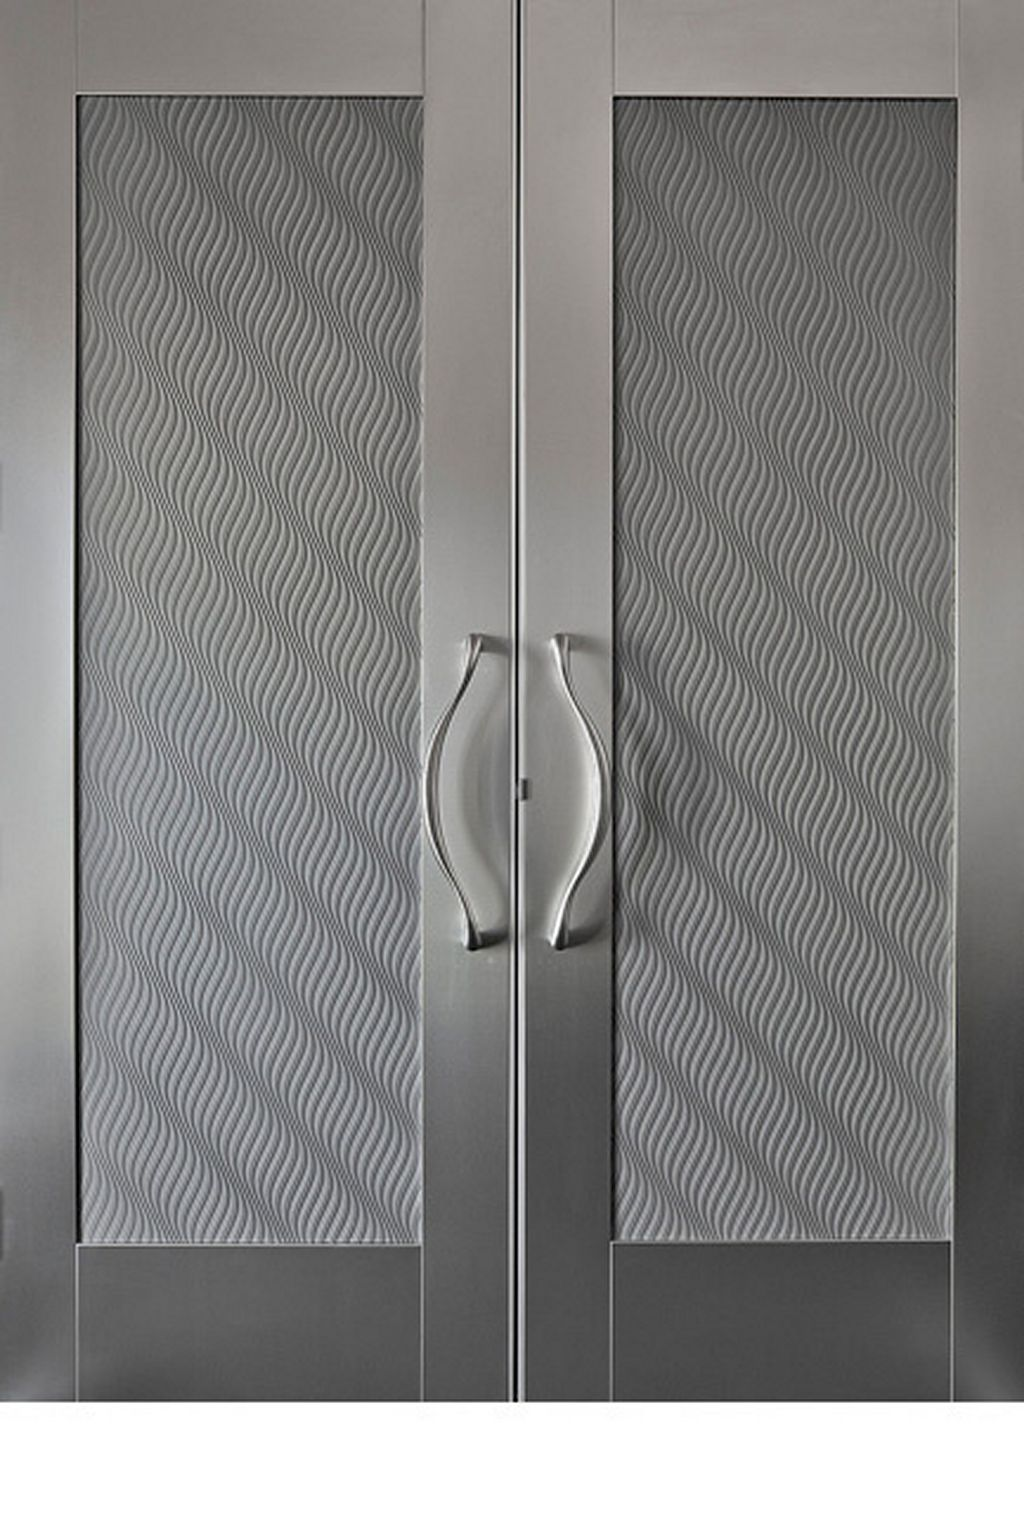 1537 #6A6561 Door Pulls Modern Minimalist Stainless Steel Door System Design save image Stainless Steel Entrance Doors 47371024